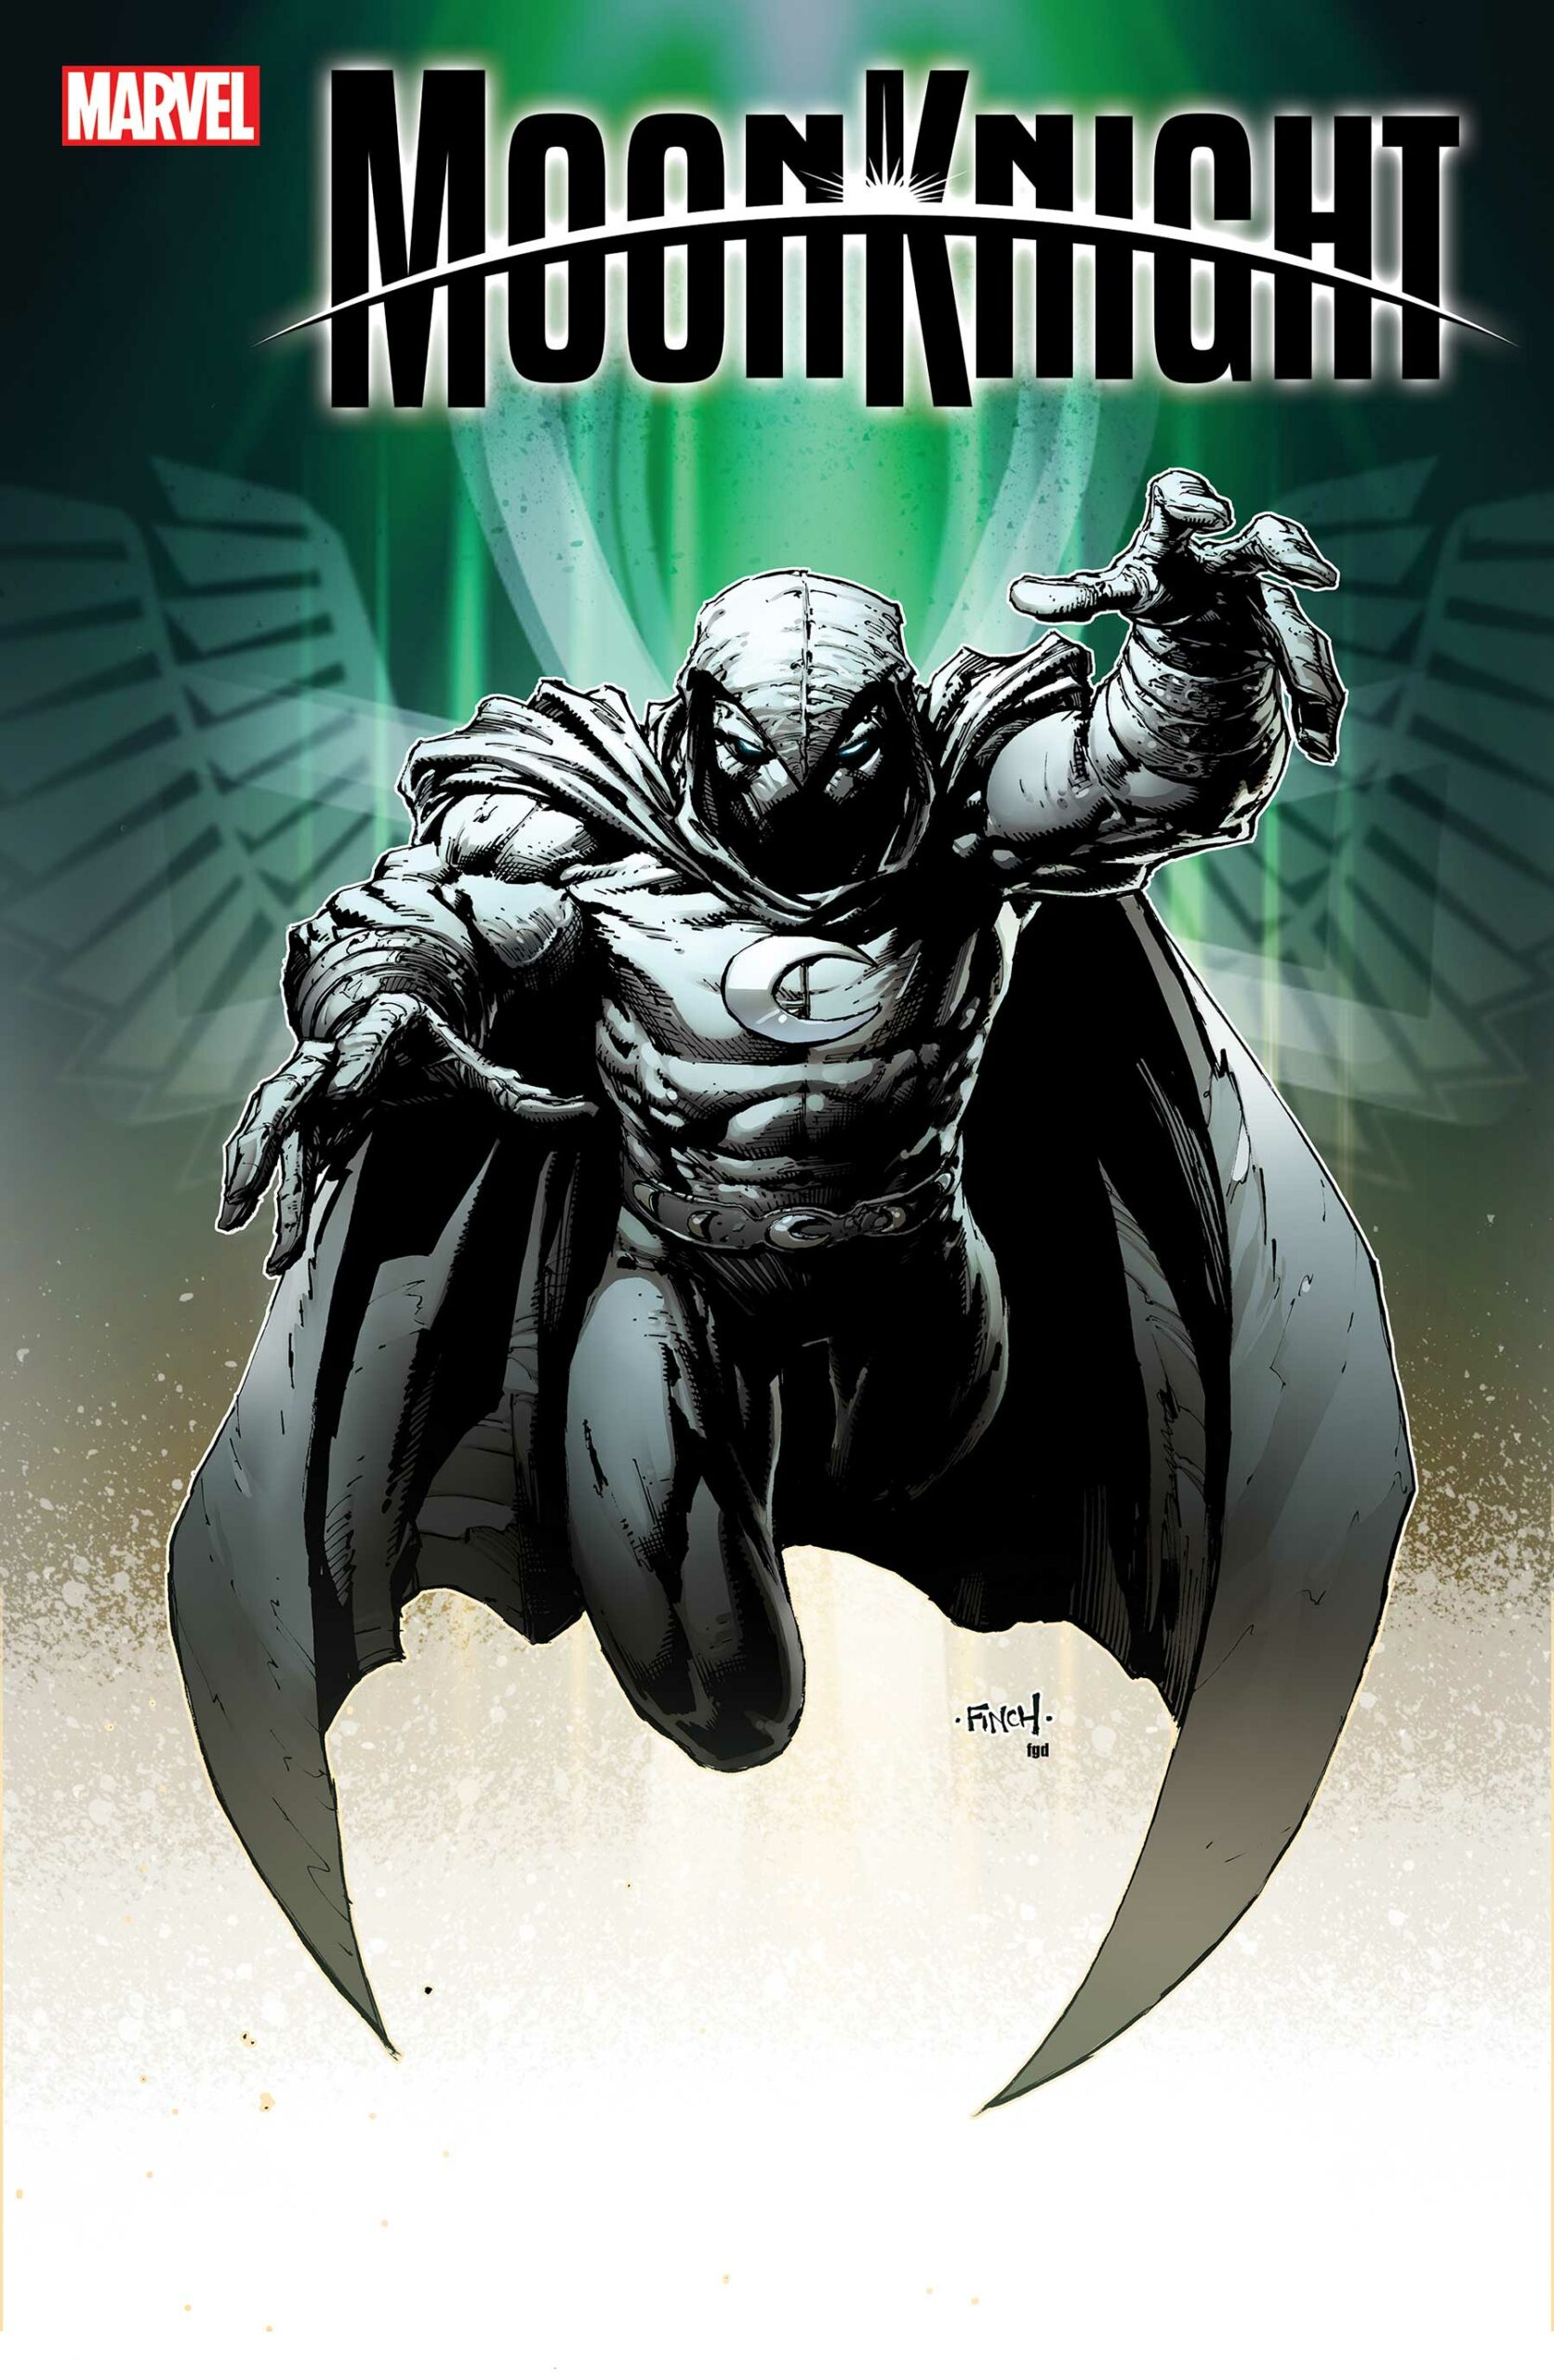 MOON KNIGHT #2 - Finch Variant Cover